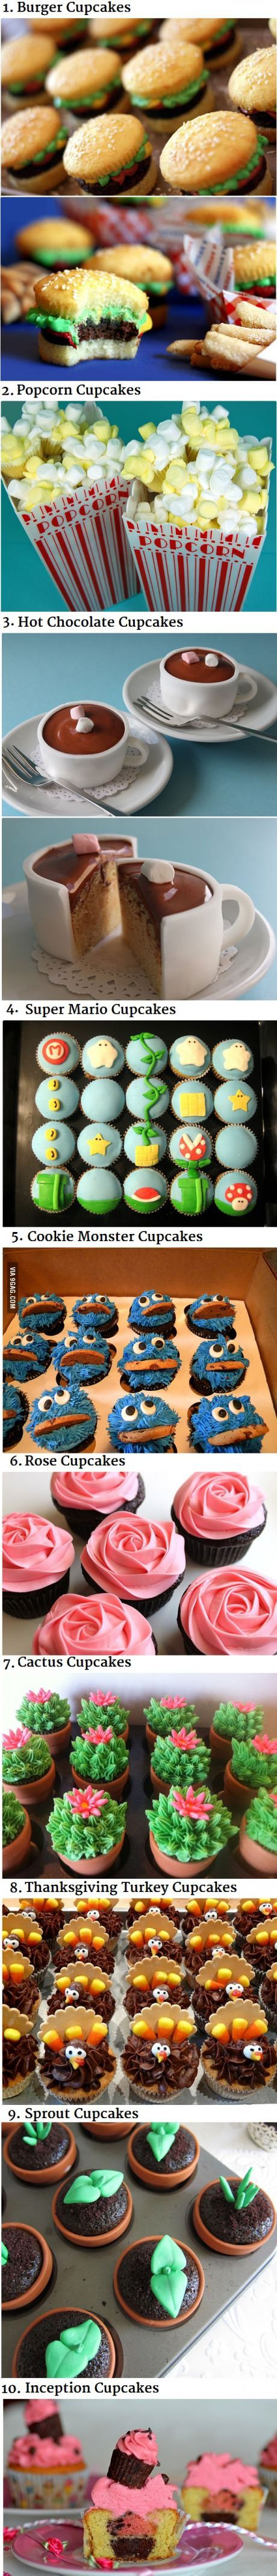 10 Awesome Cupcake Decorating Ideas!!!! :))))